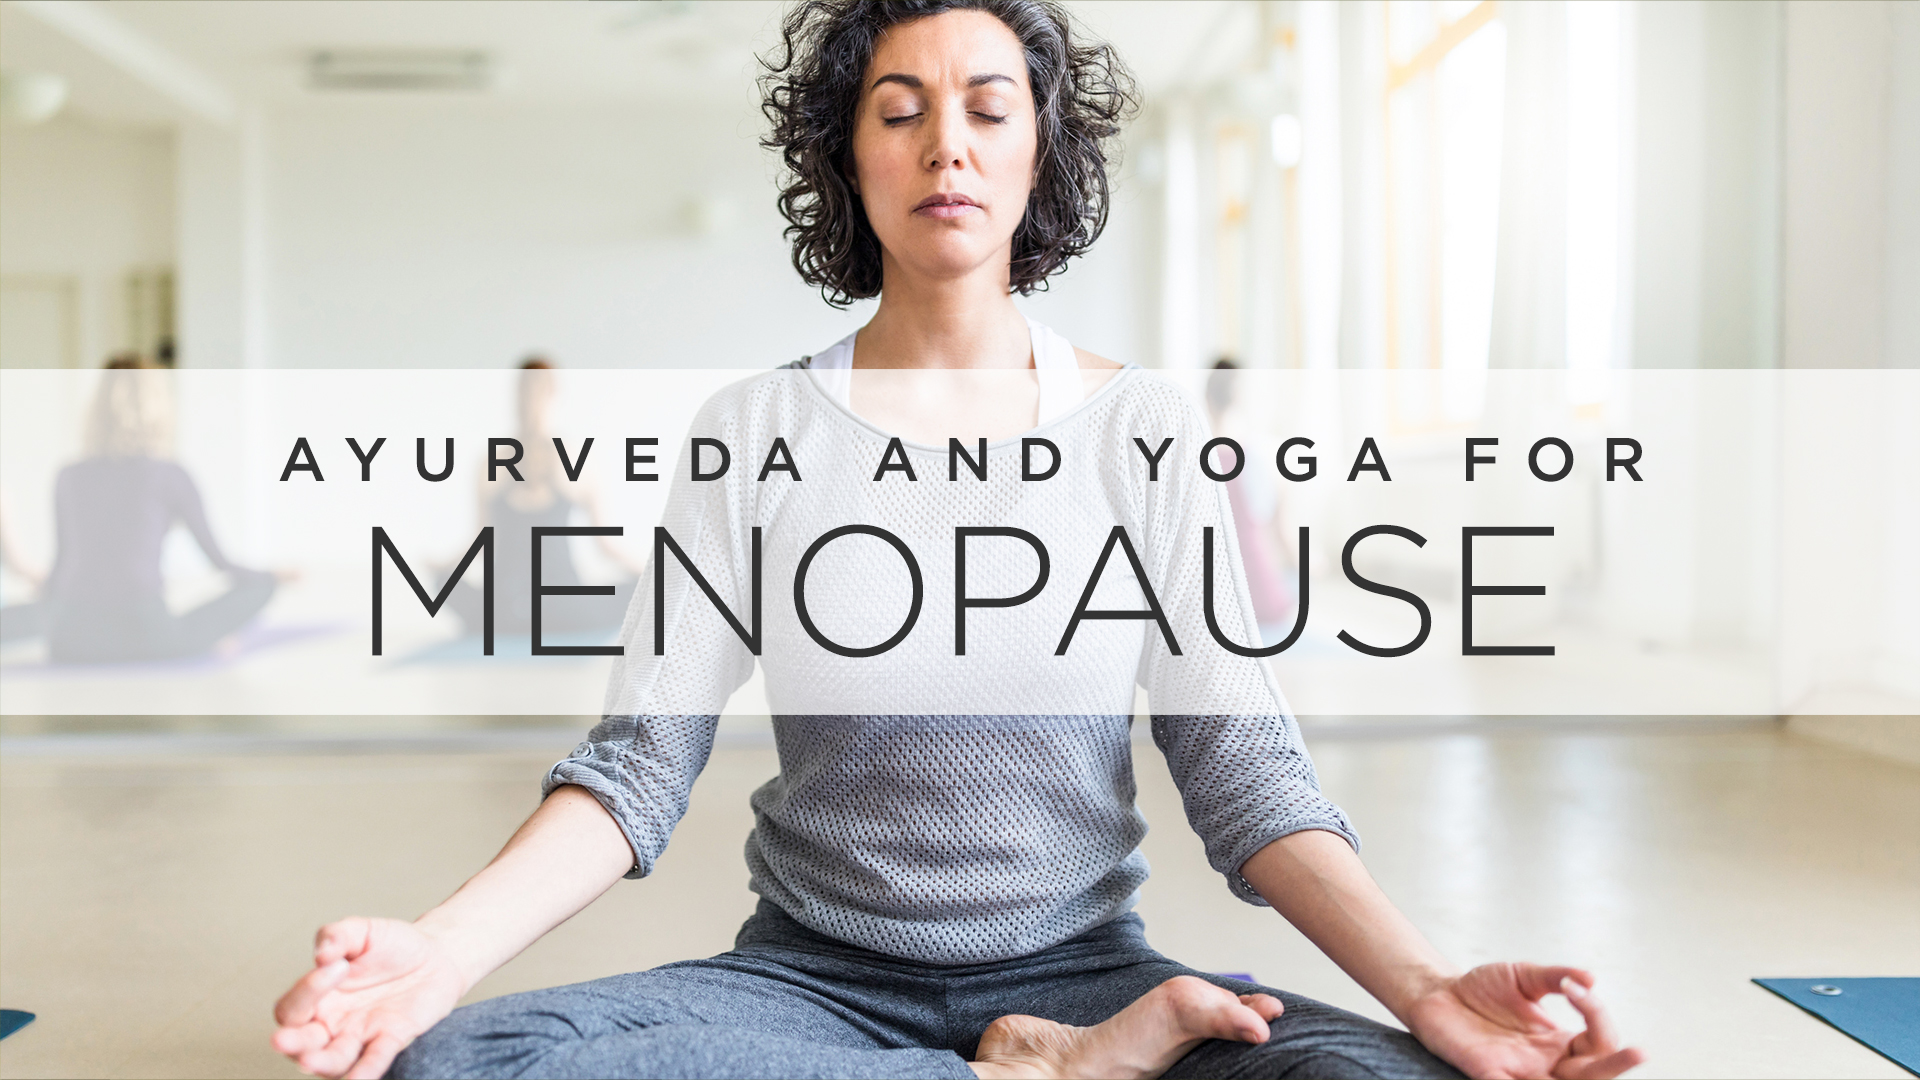 Yoga and meditation for menopause